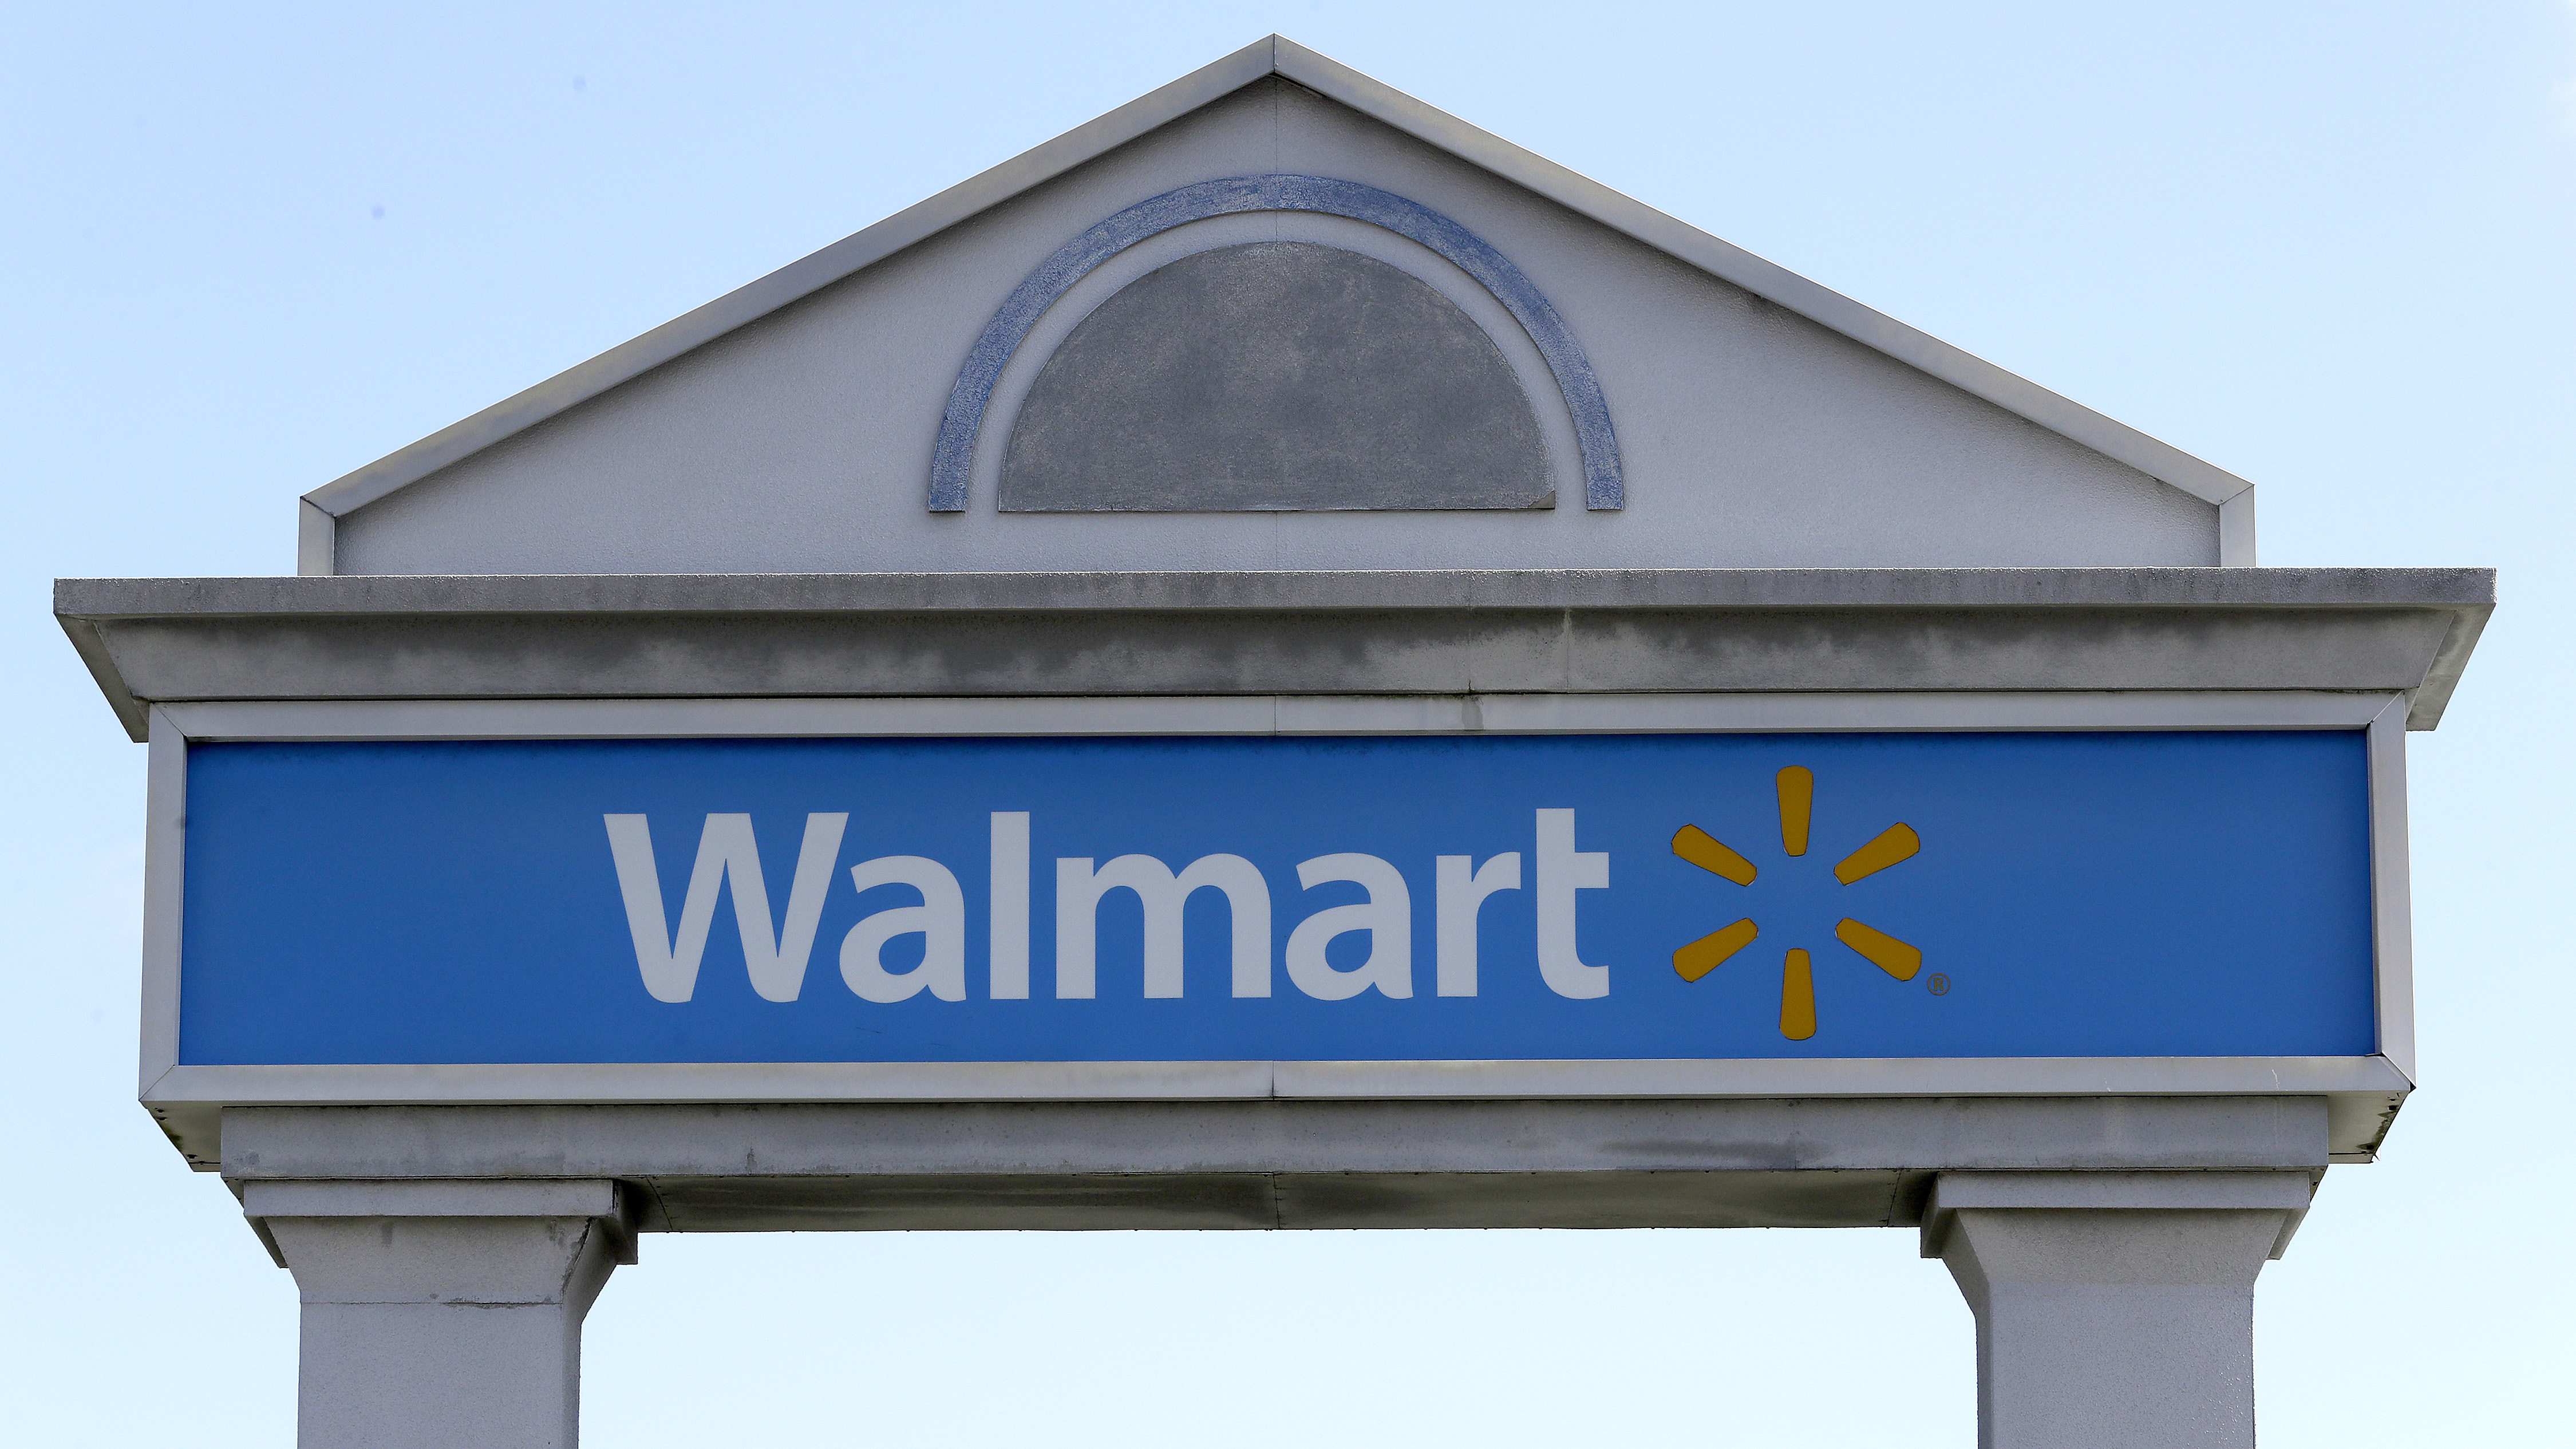 Walmart dodged up to $2 6 billion in US taxes, former exec